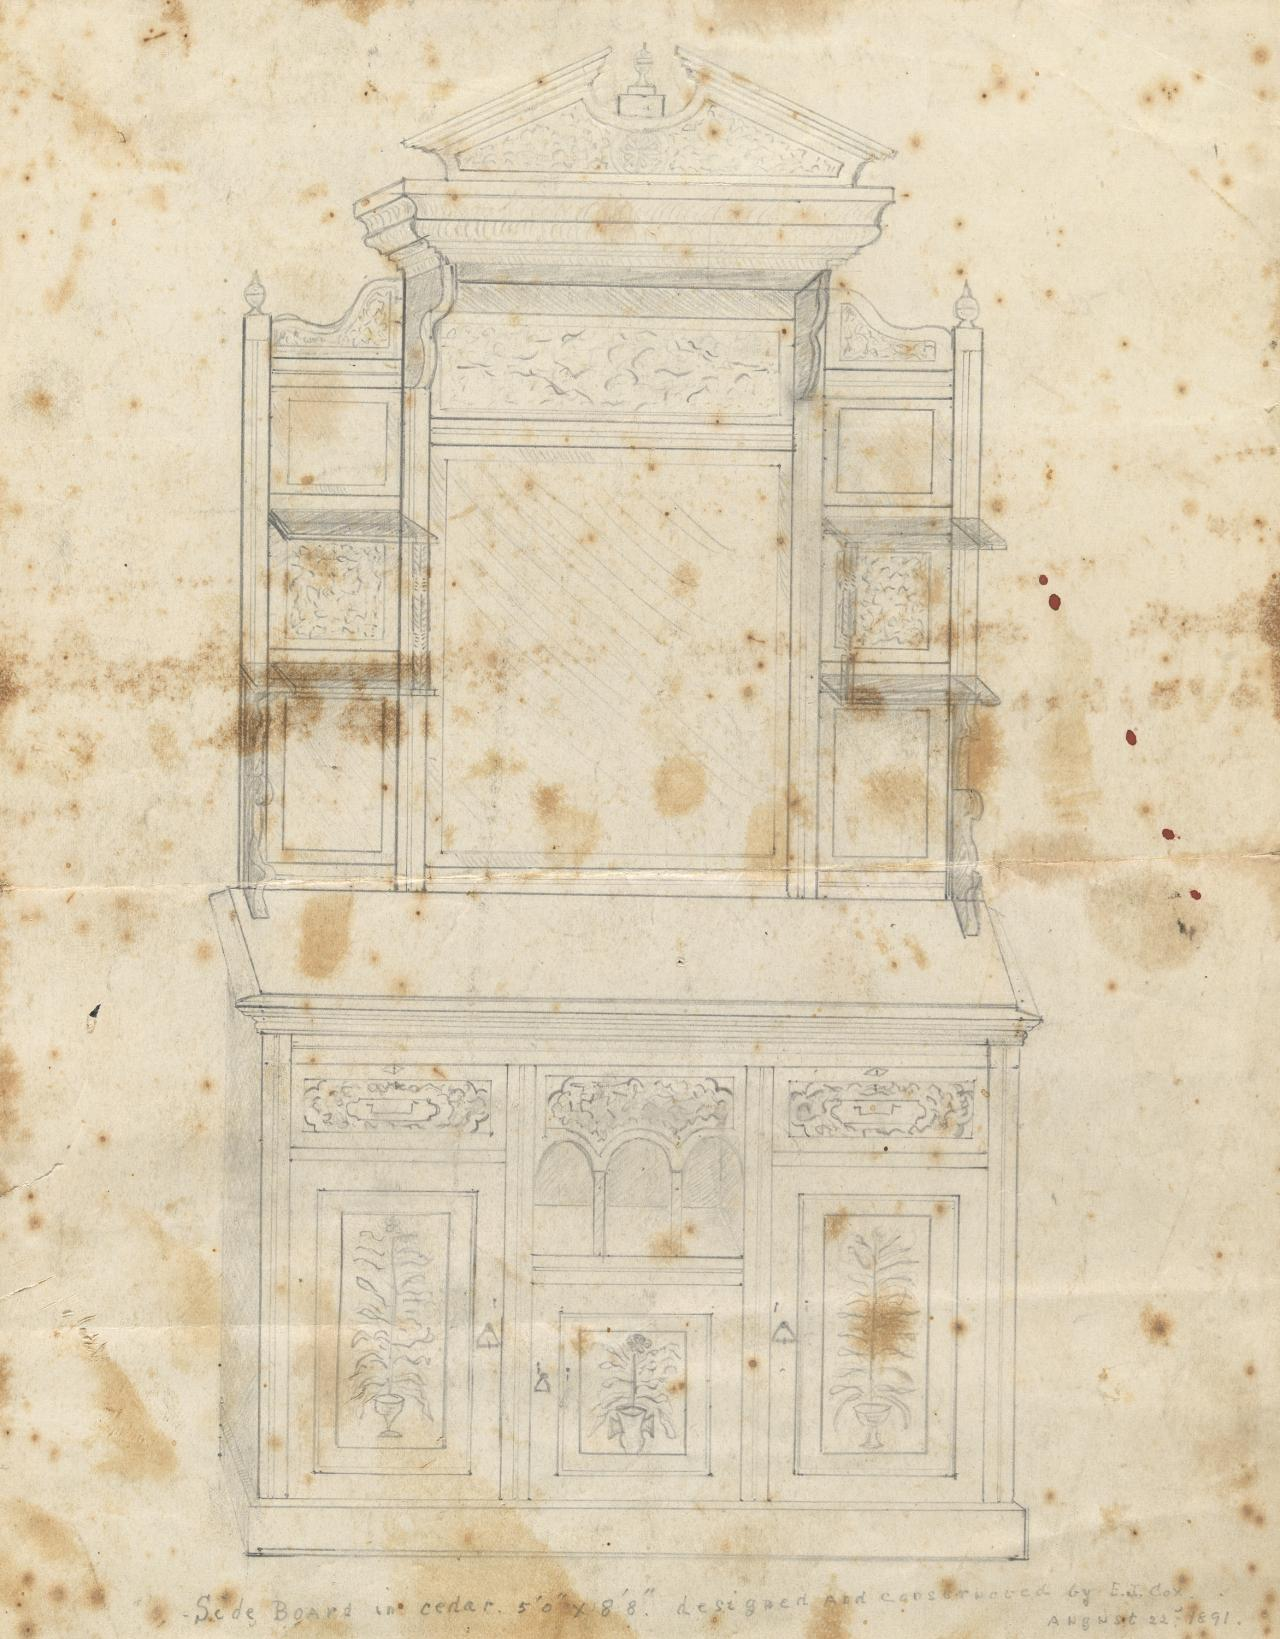 Design for a sideboard